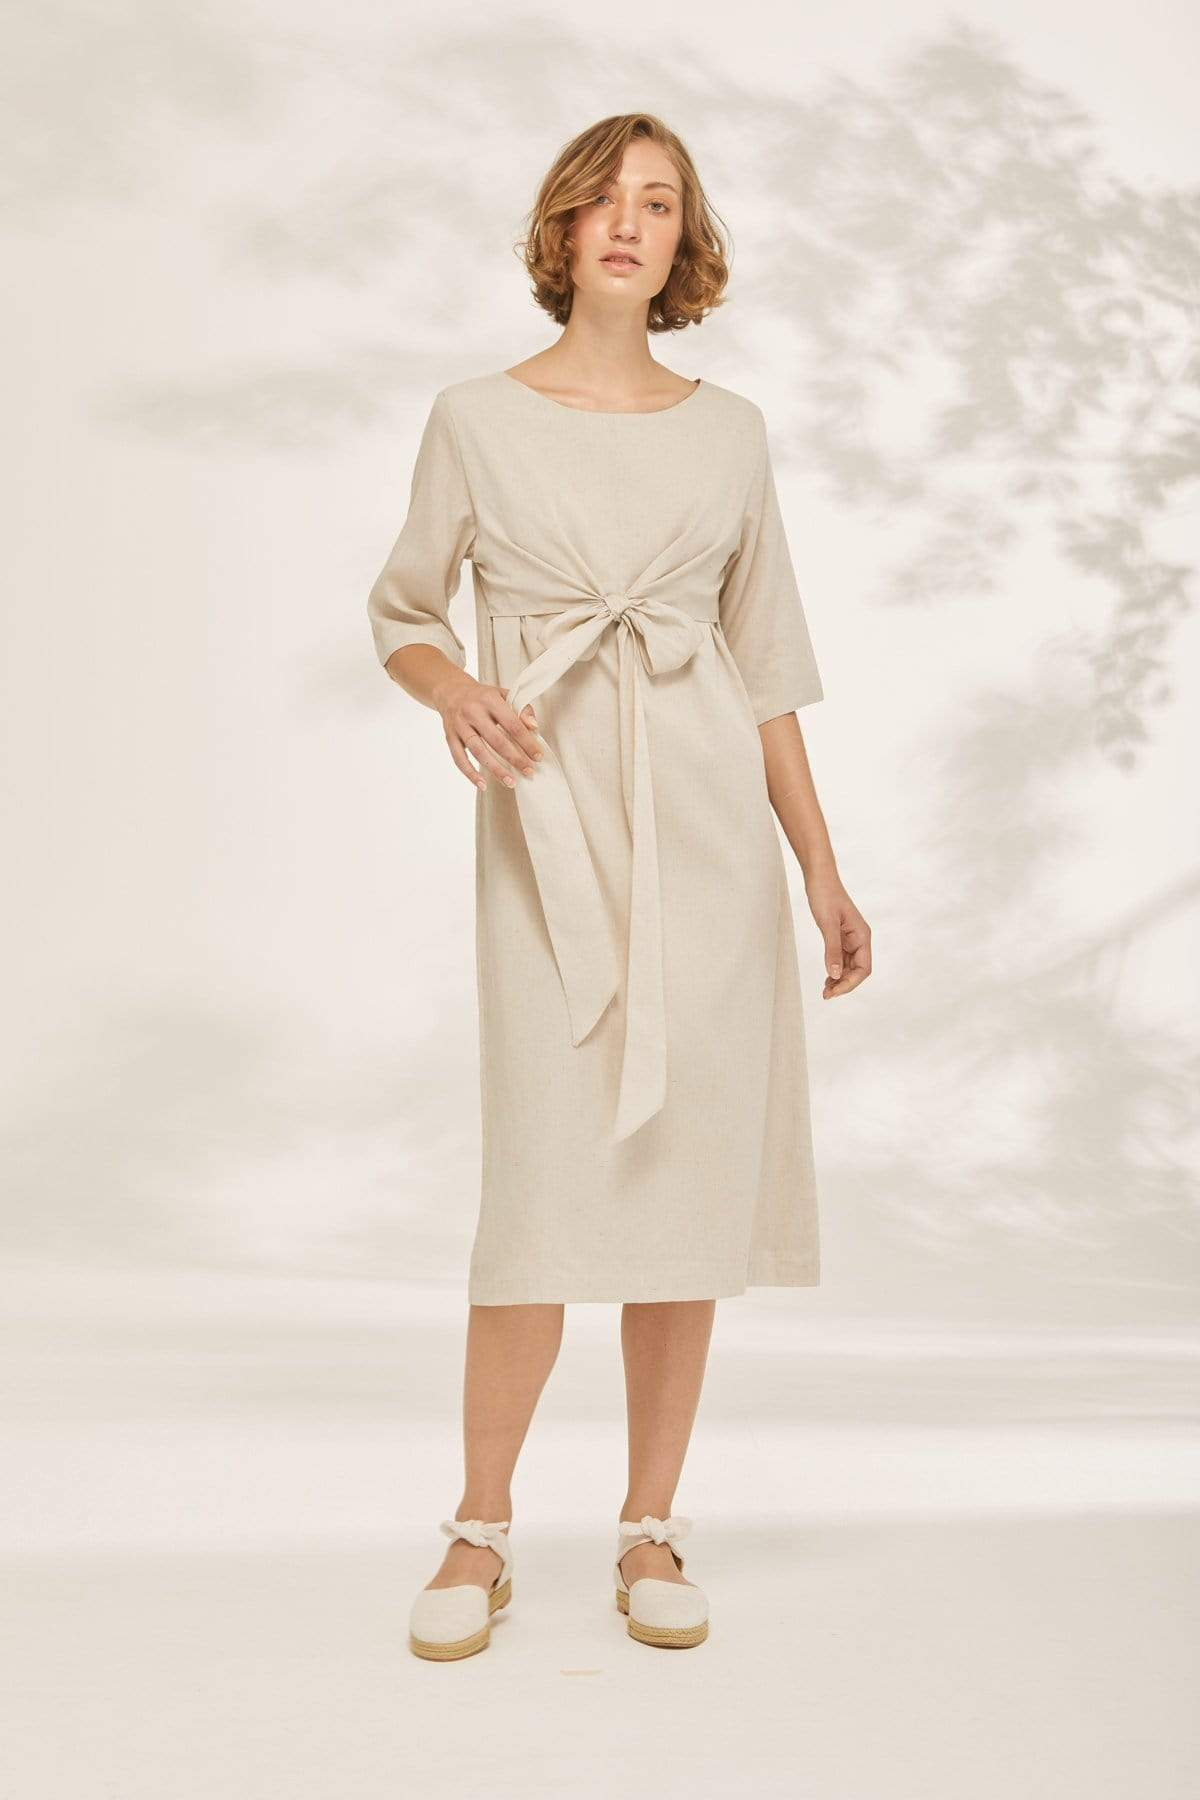 TAKTAI Dress S / Gray Waist Wrap Tunic Dress